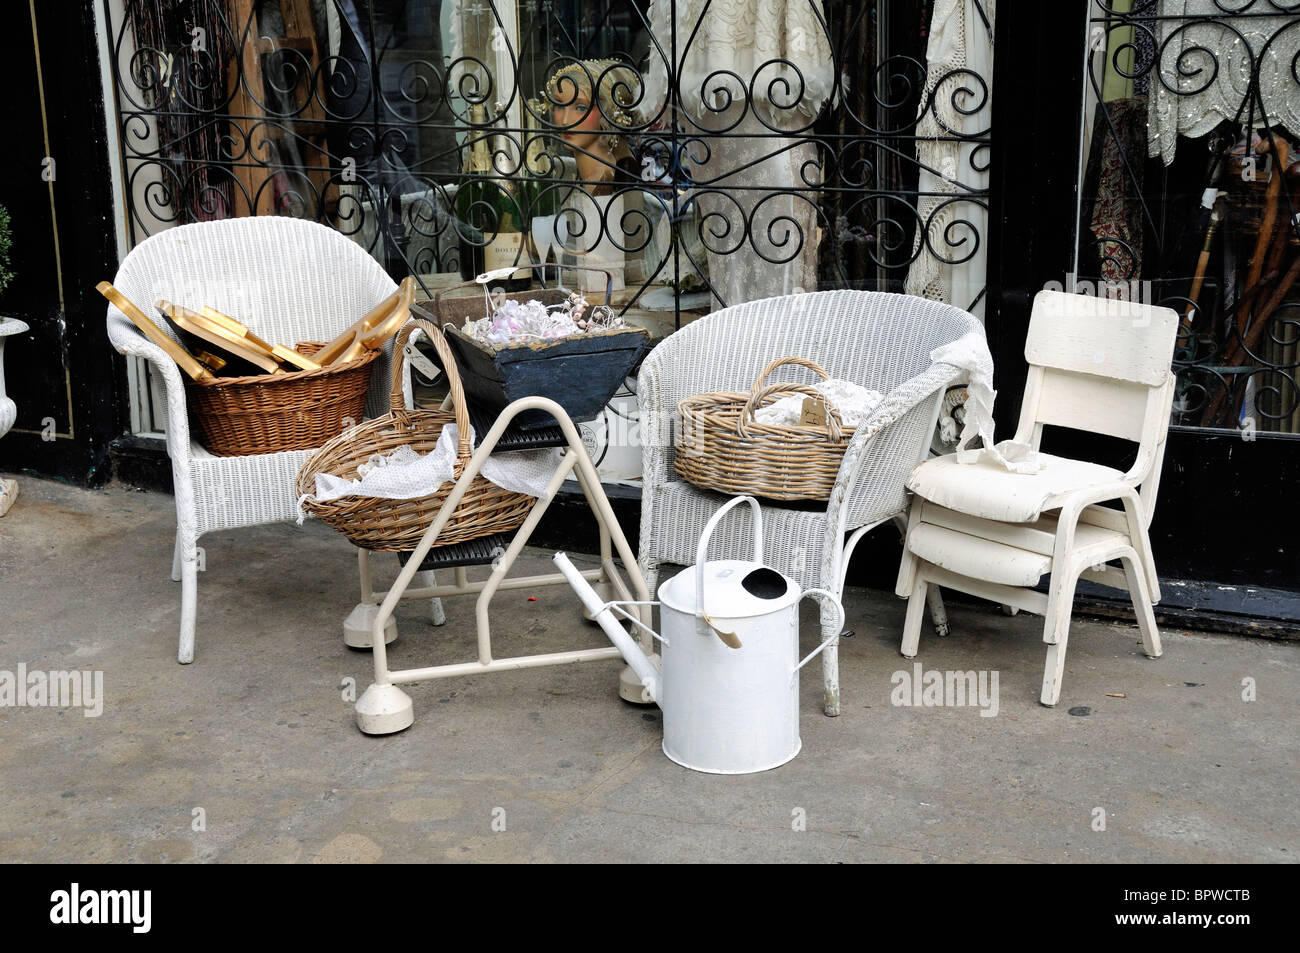 Display Of Vintage Items Outside Antique Shop Camden Passage Islington  London England UK